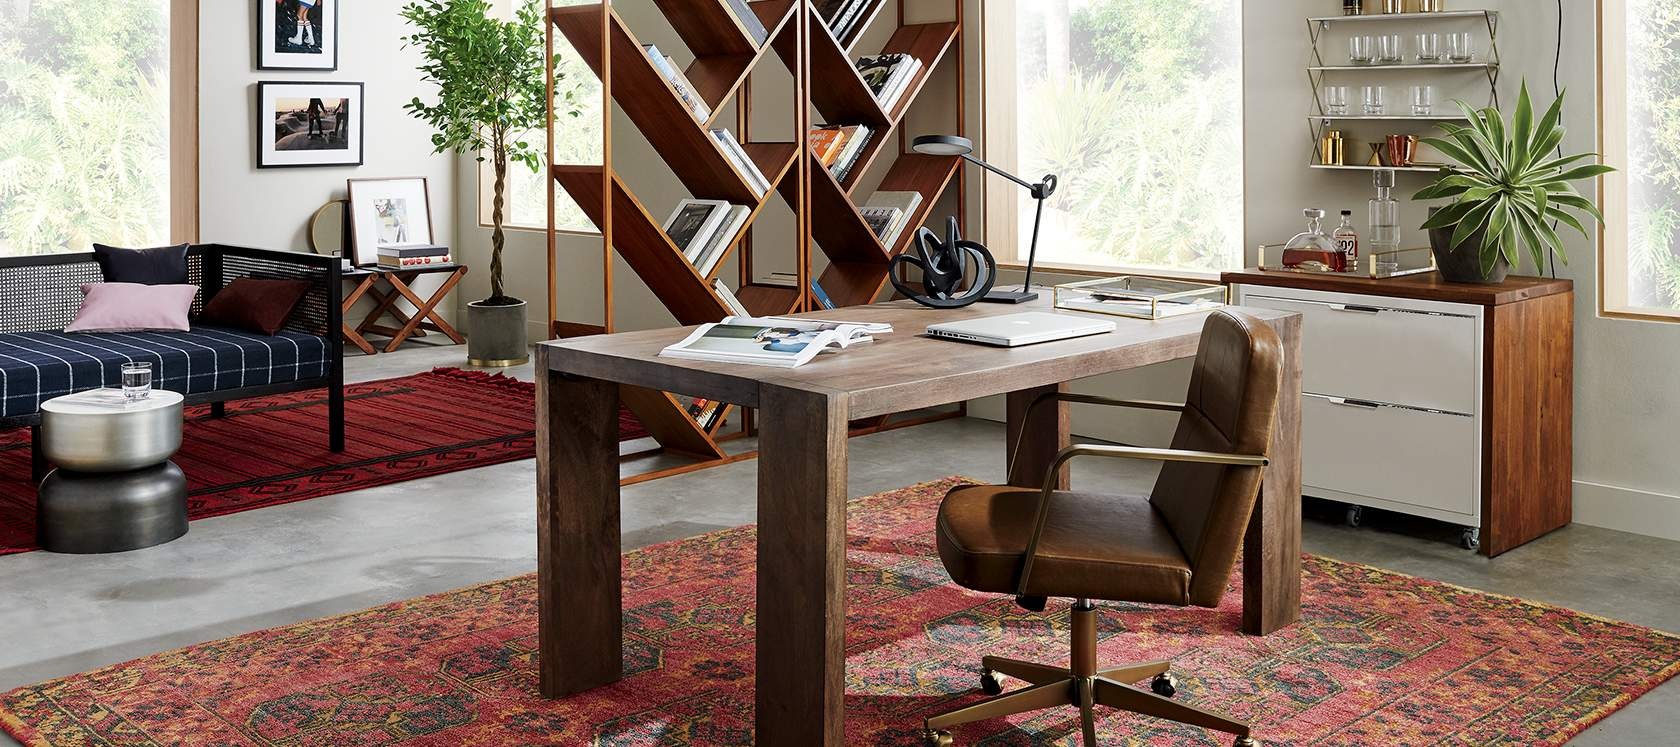 Home office furniture and office accessories cb2 for Office images